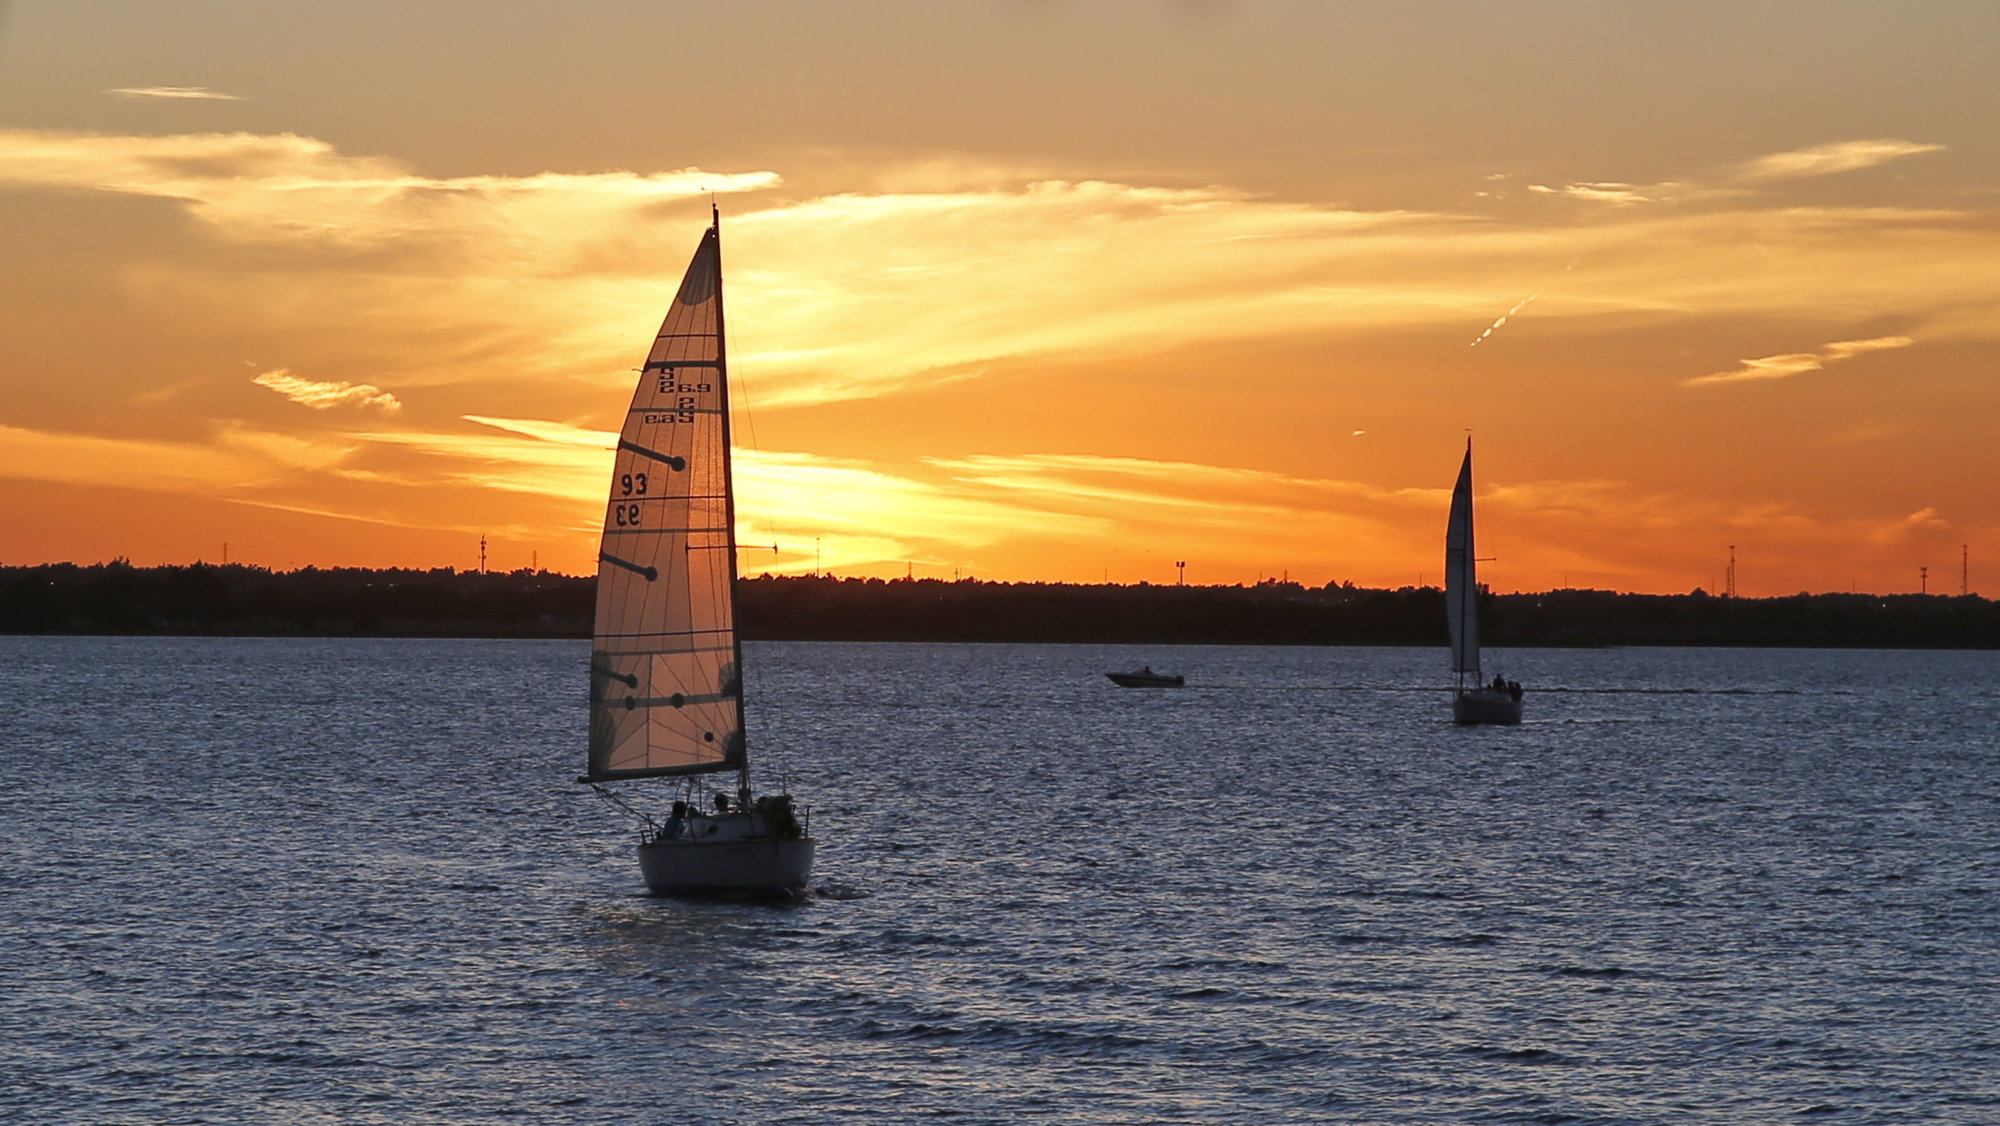 Sailboats return to the harbor as the sun sets at Lake Hefner in Oklahoma City, Wednesday, Sept. 28, 2016. (AP Photo/Sue Ogrocki)